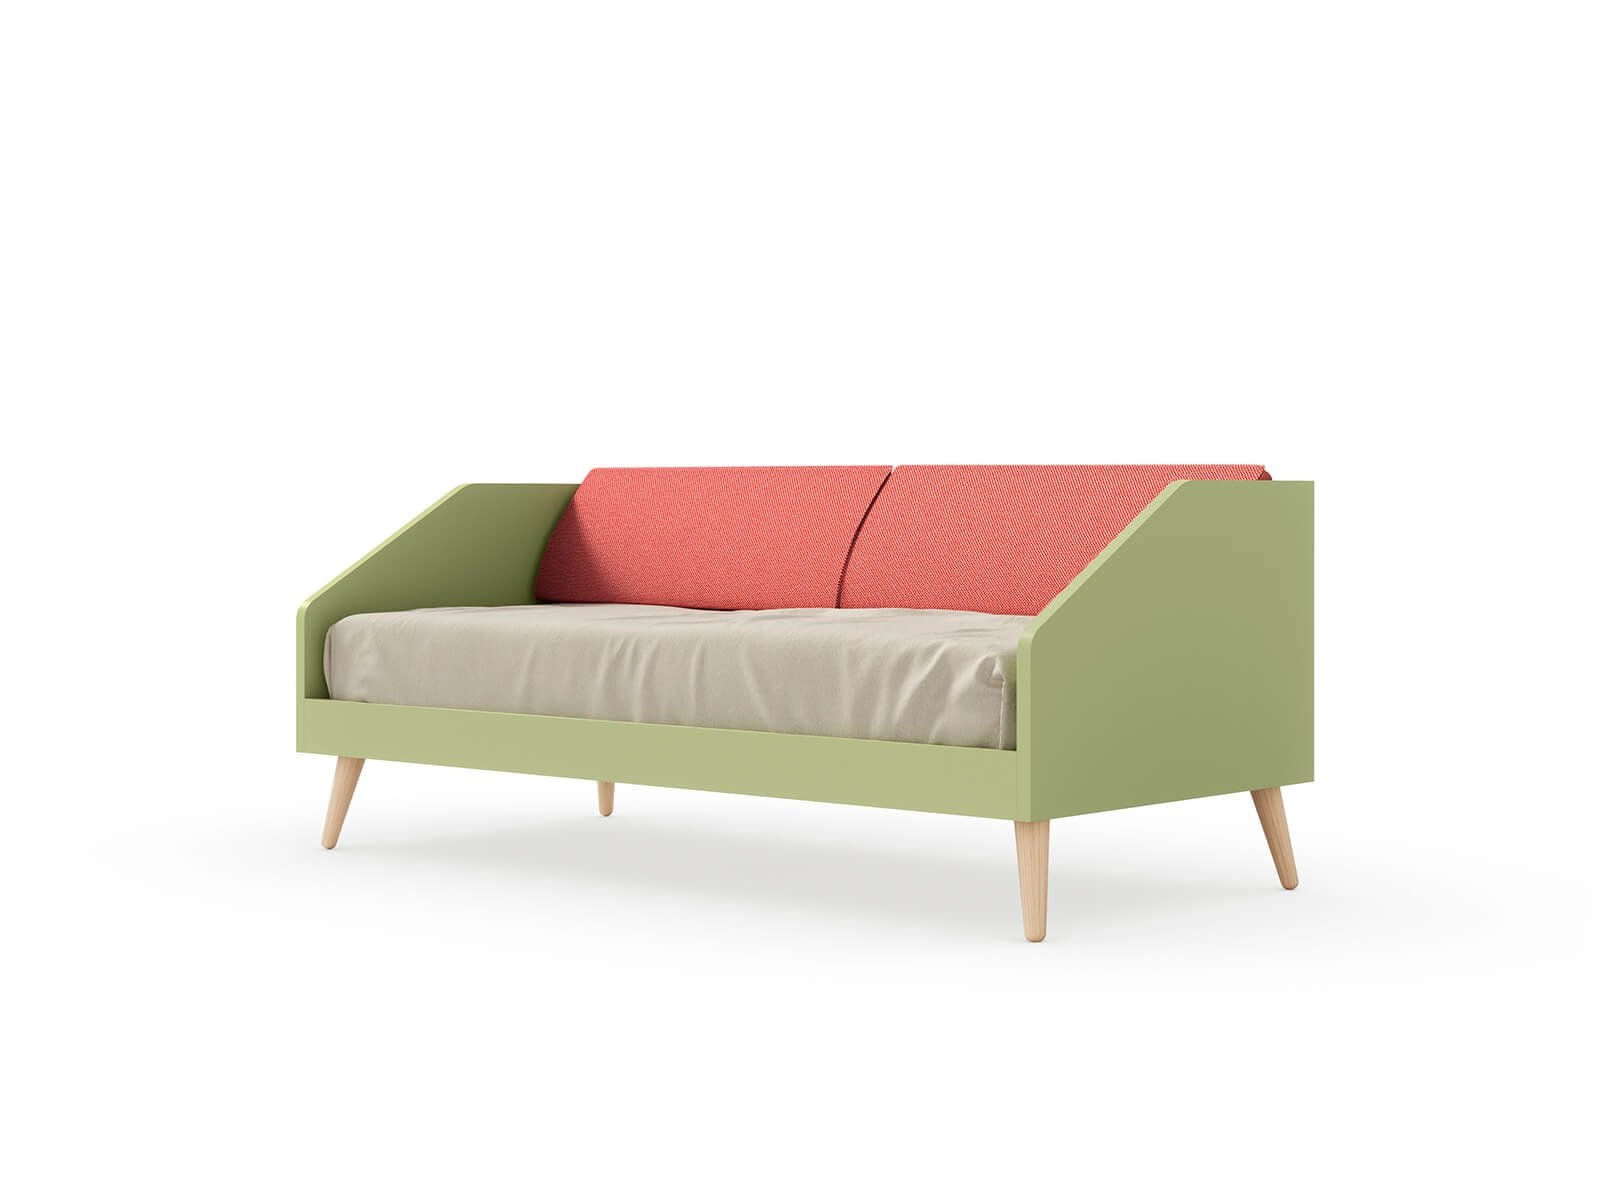 Bug sofa bed